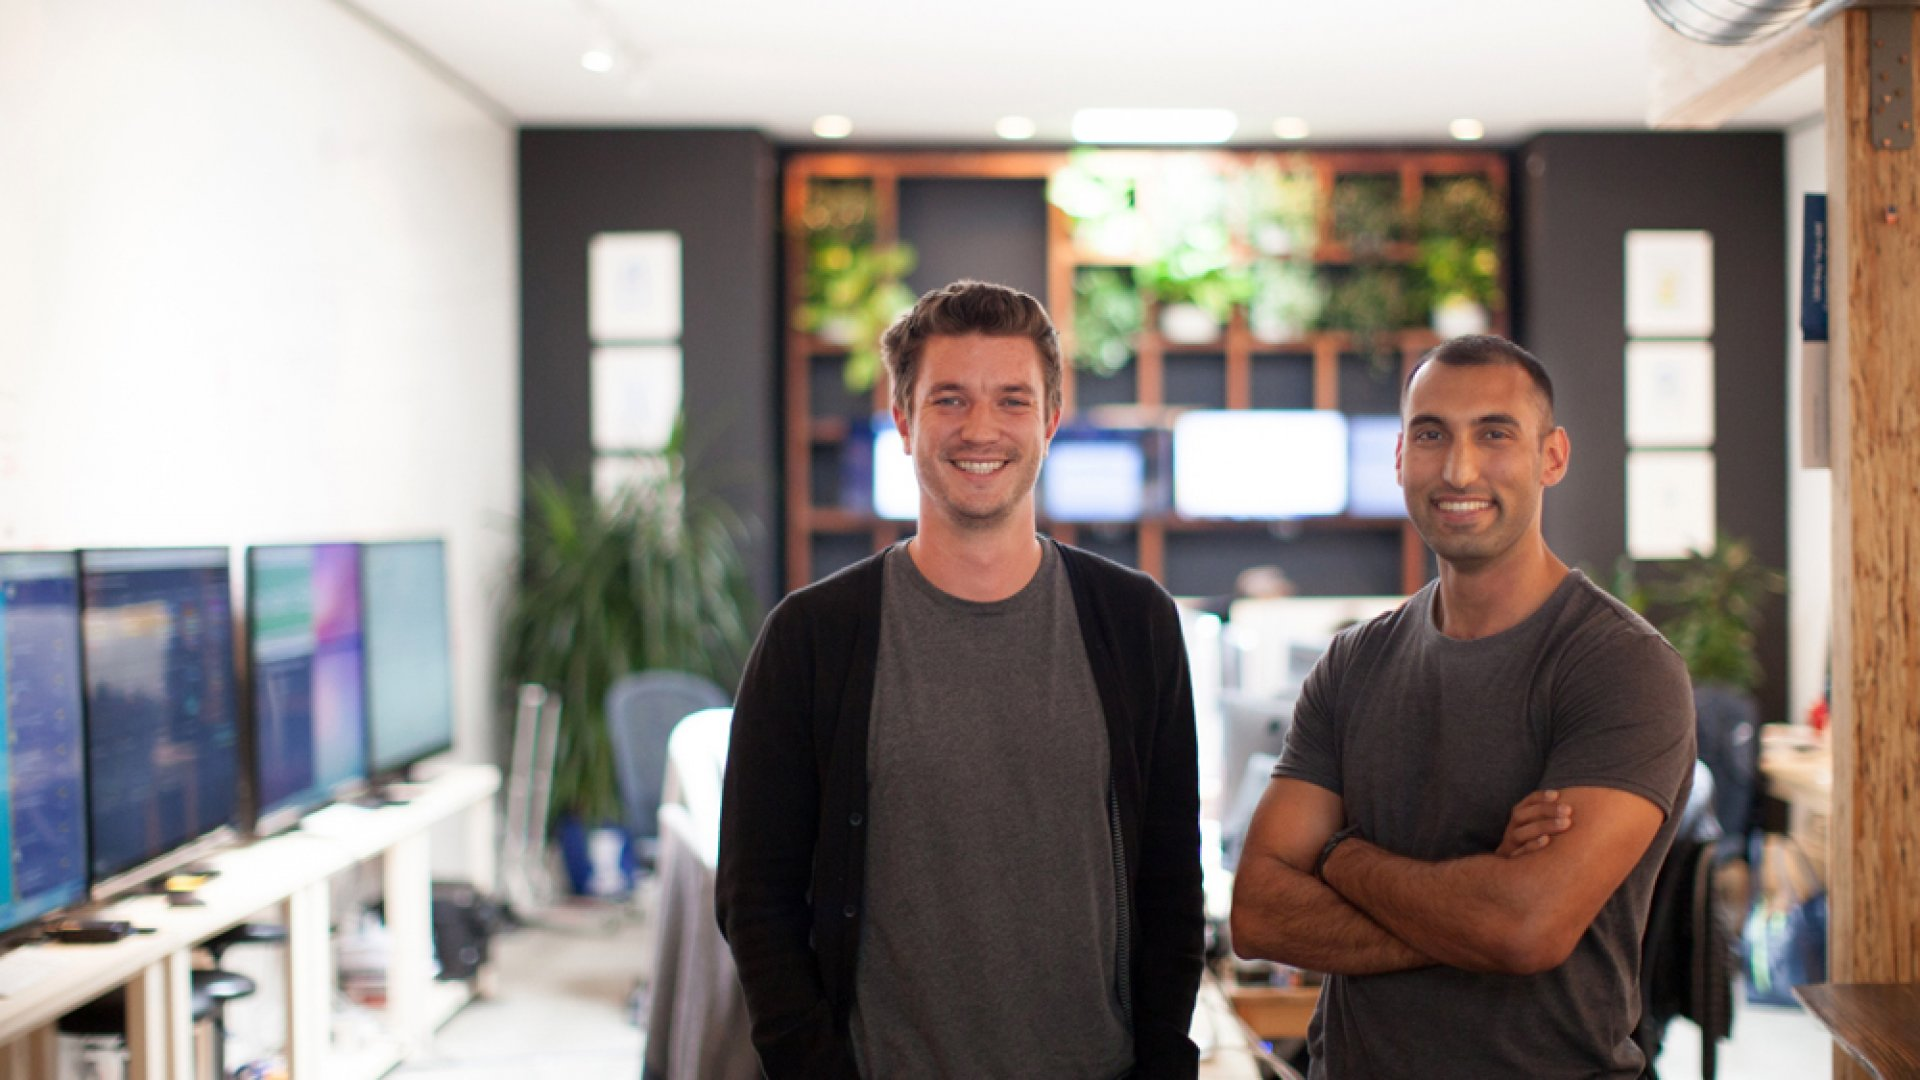 ClassDojo Co-founders Liam Don (left) and Sam Chaudhary have reached millions of teachers with their app. Now, they are beginning to think about monetization.